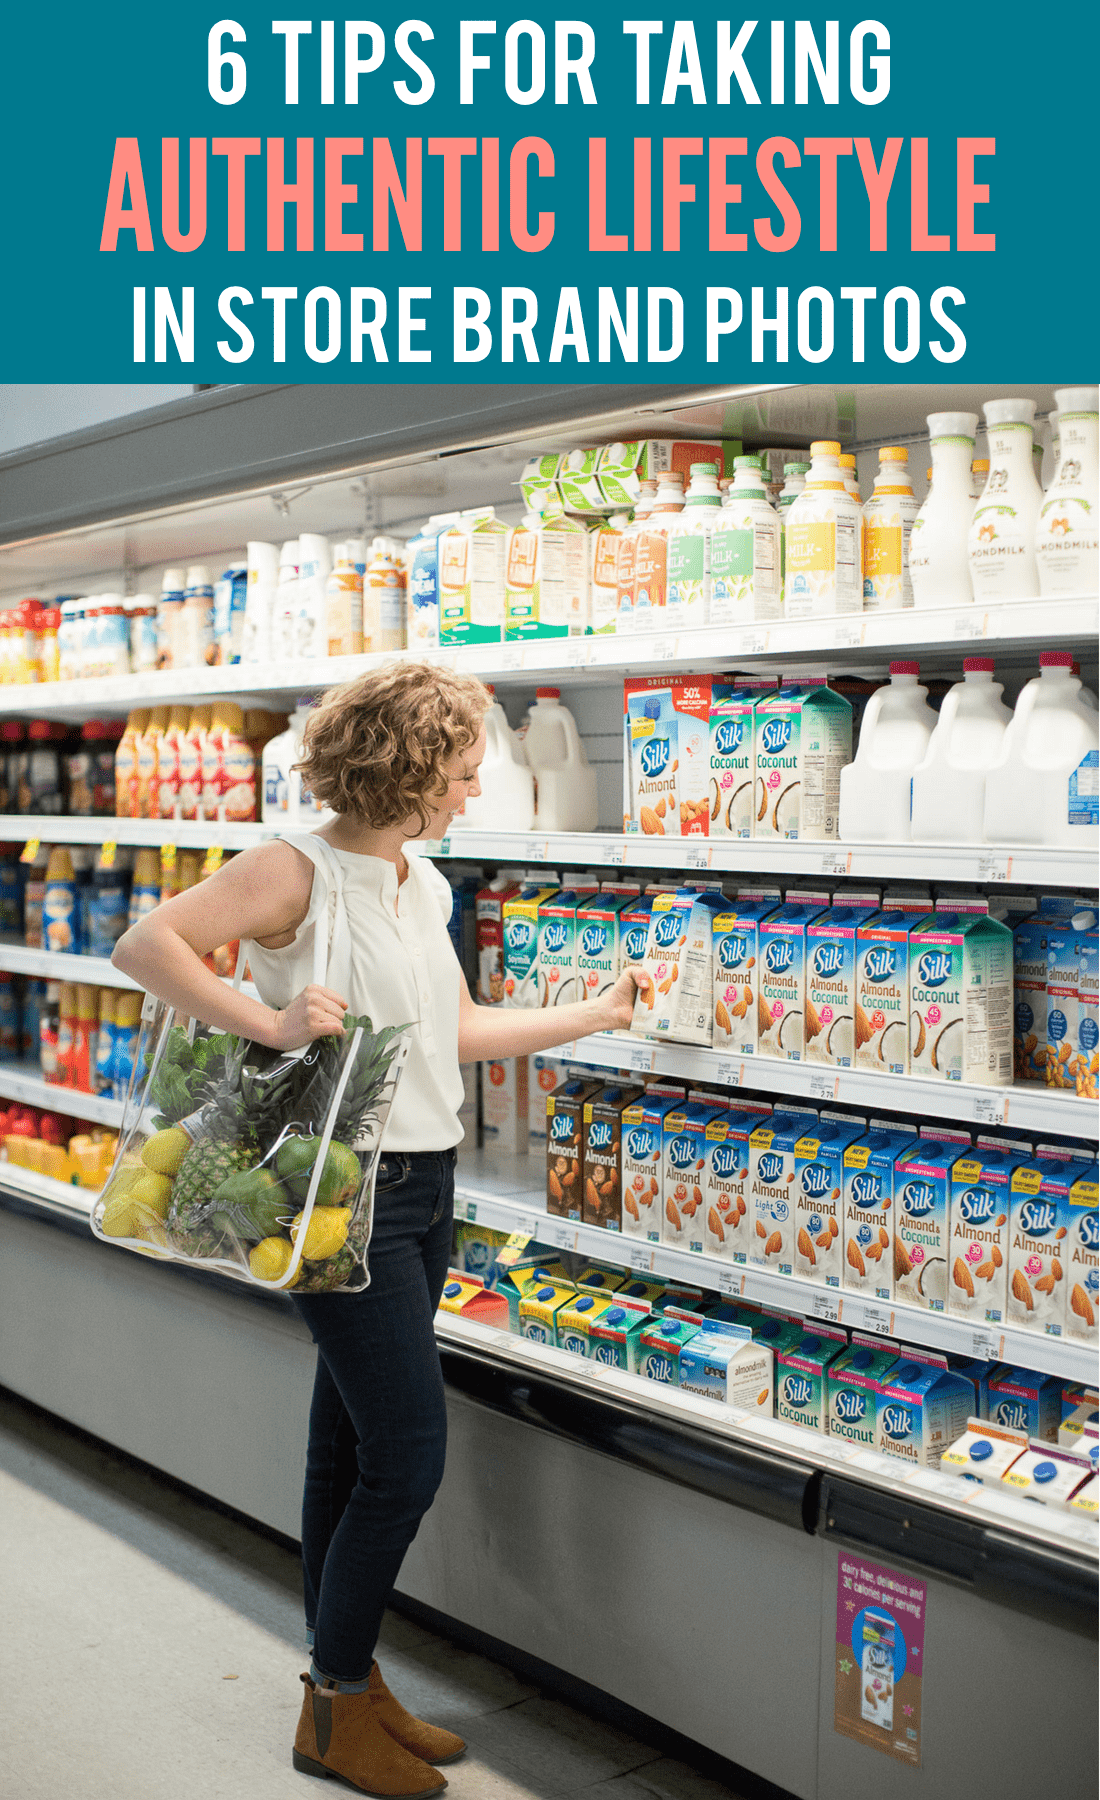 Learn how to take authentic brand photos in a store. 6 tips for influencers and bloggers when taking sponsored brand photos in a grocery store, clothing store, or out shopping anywhere!